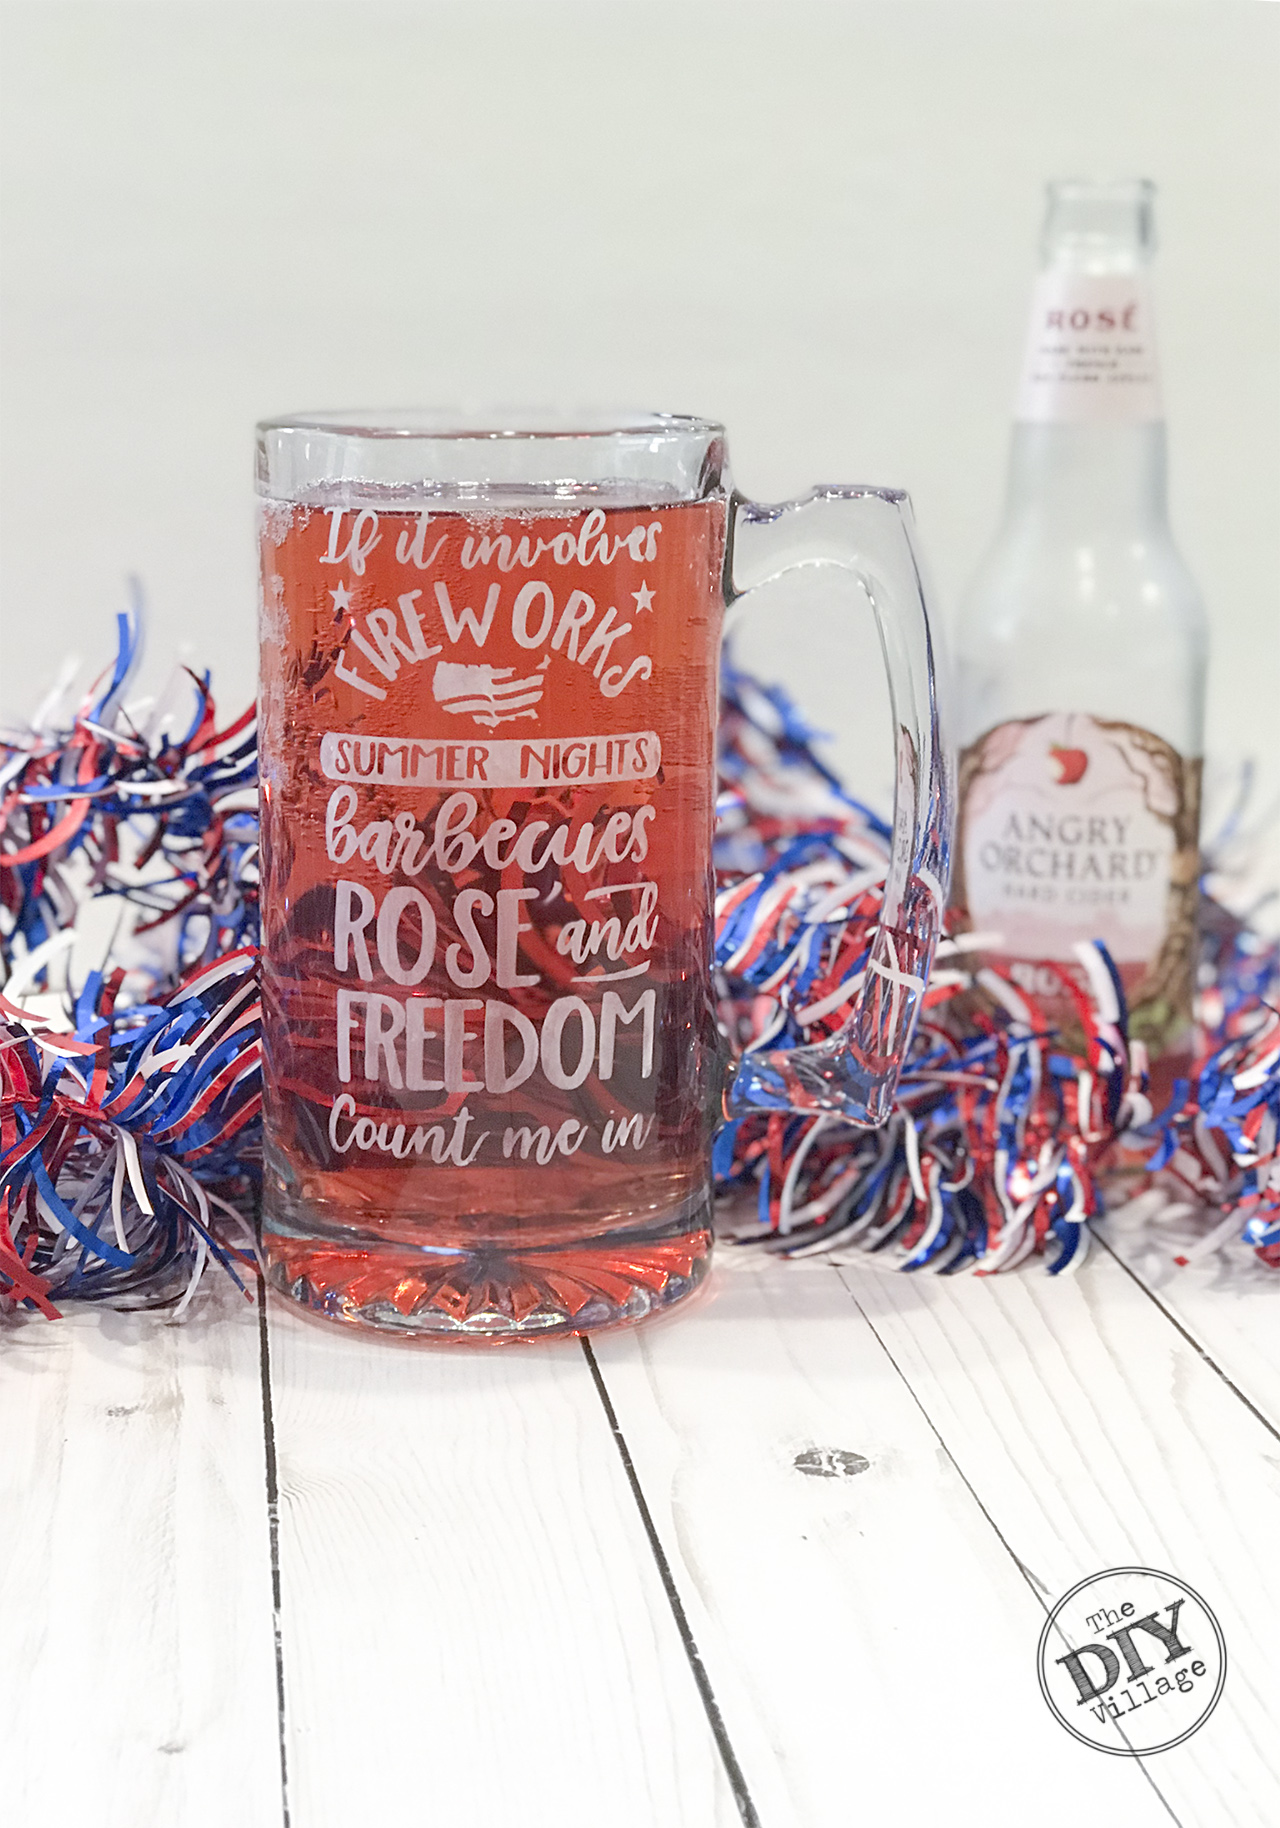 DIY Tutorial for Rose Patriotic etched mug. #patriotic #dollarstore #rose #etchedmug #glassetch #freedom